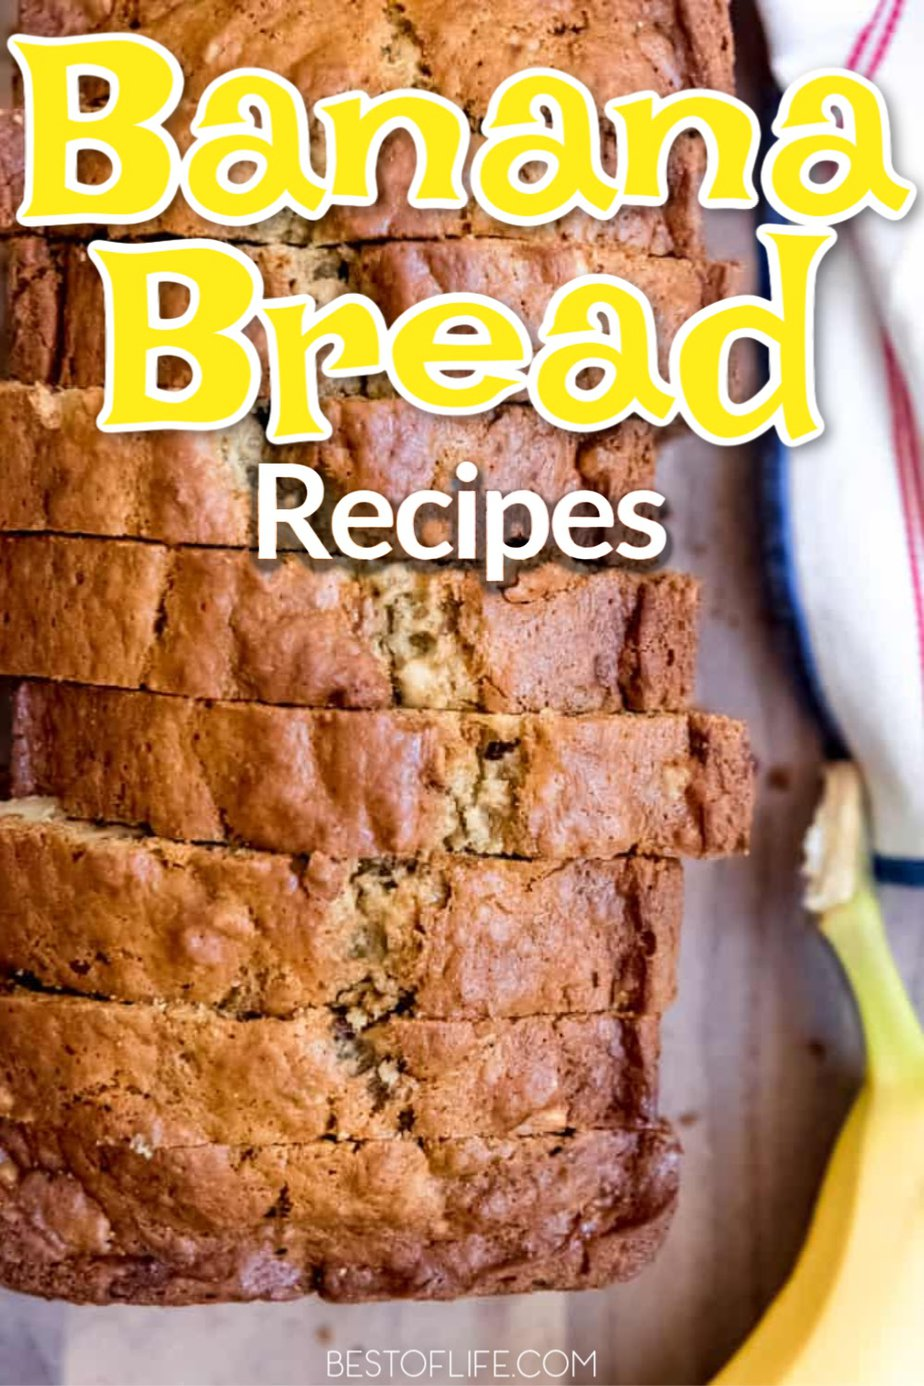 You can include the kids in making these banana bread recipes because they are family-friendly recipes that are simple and delicious. Banana Bread Brownies | Banana Bread Healthy | Banana Bread Recipe Chocolate Chip | Banana Bread Recipe Healthy | Recipes with Bananas #banana #recipe